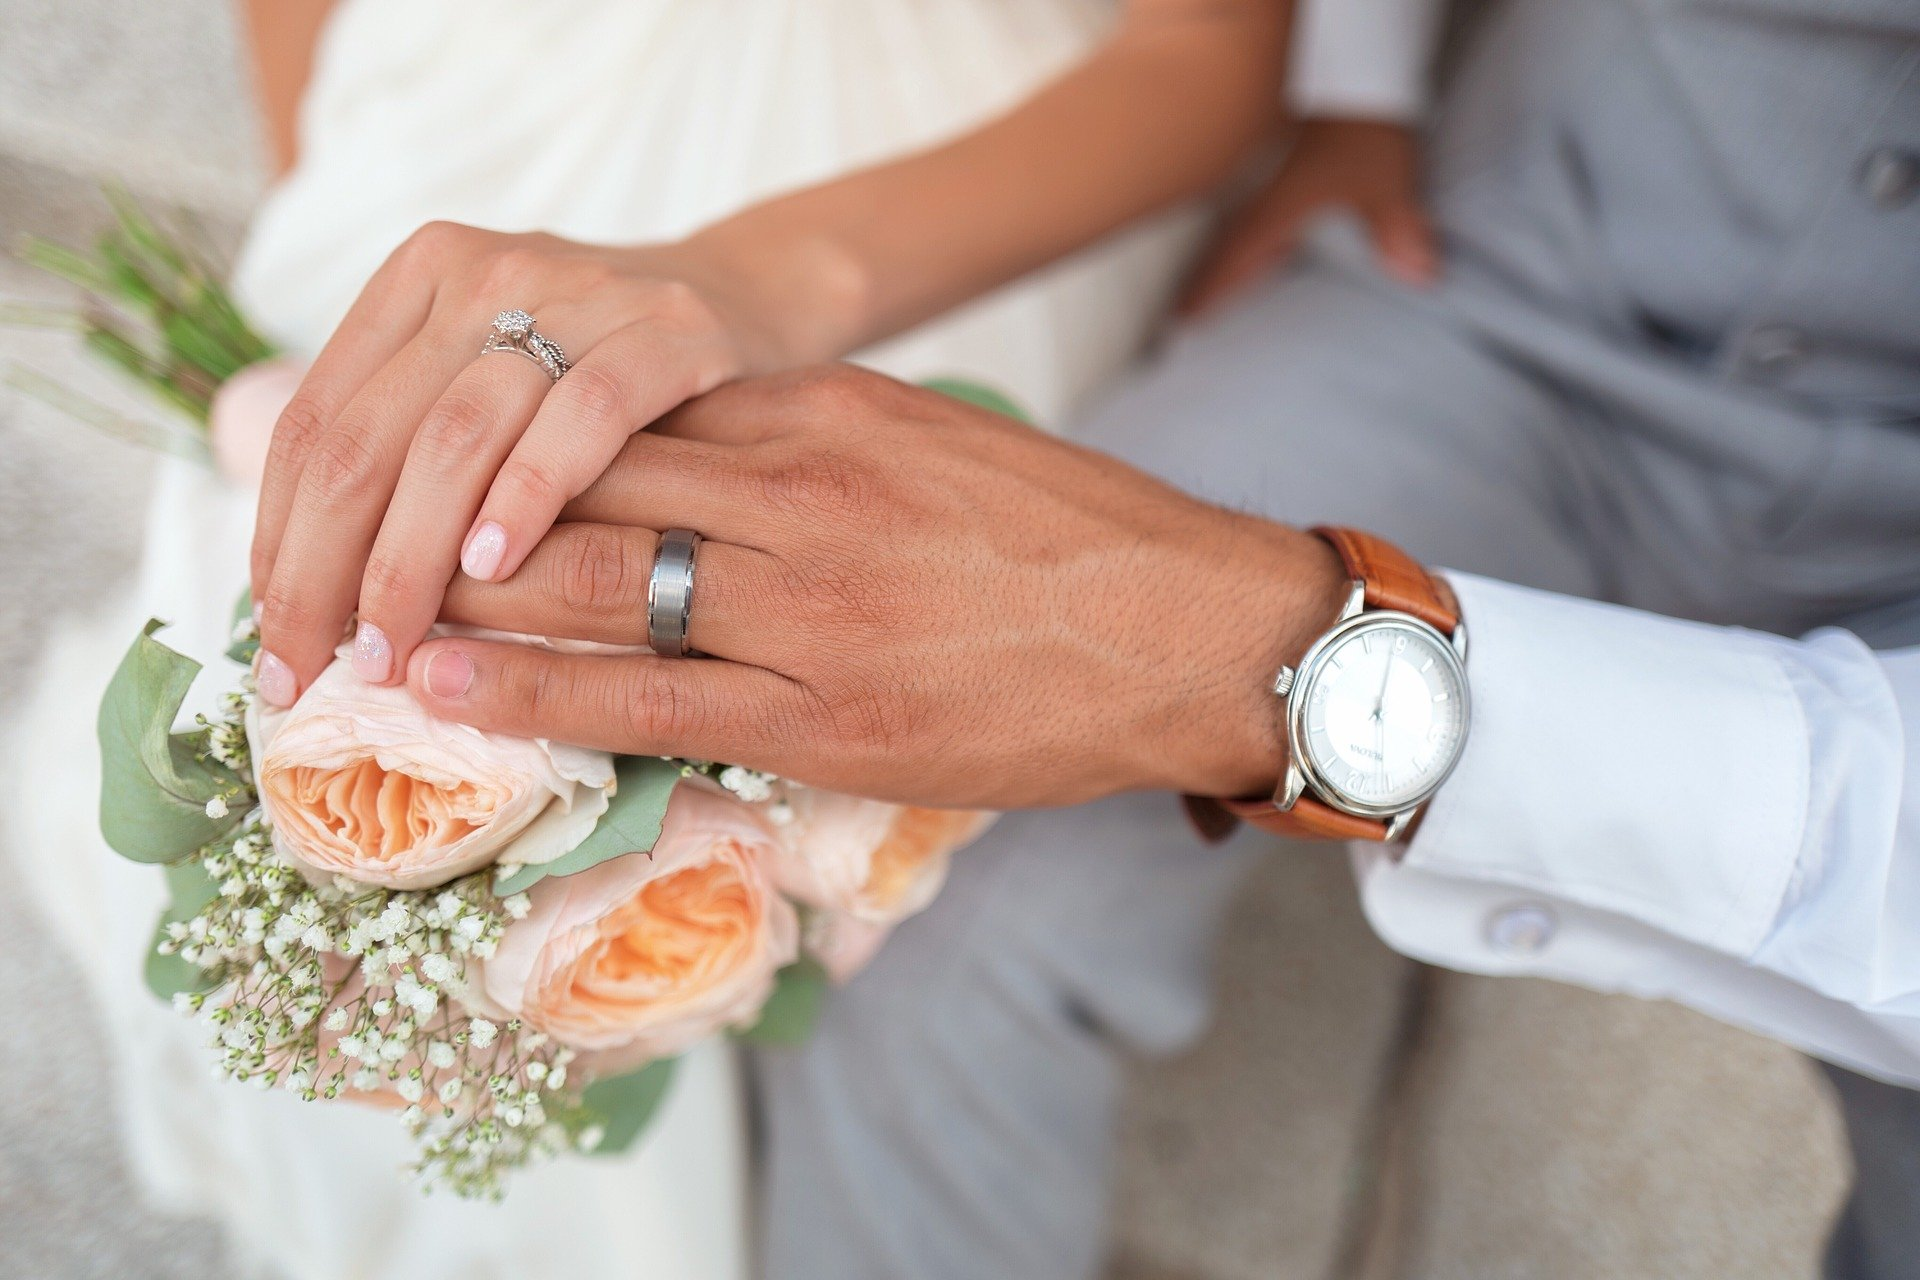 bride 1837148 1920 - What is a Marriage License and Why Is It So Important?